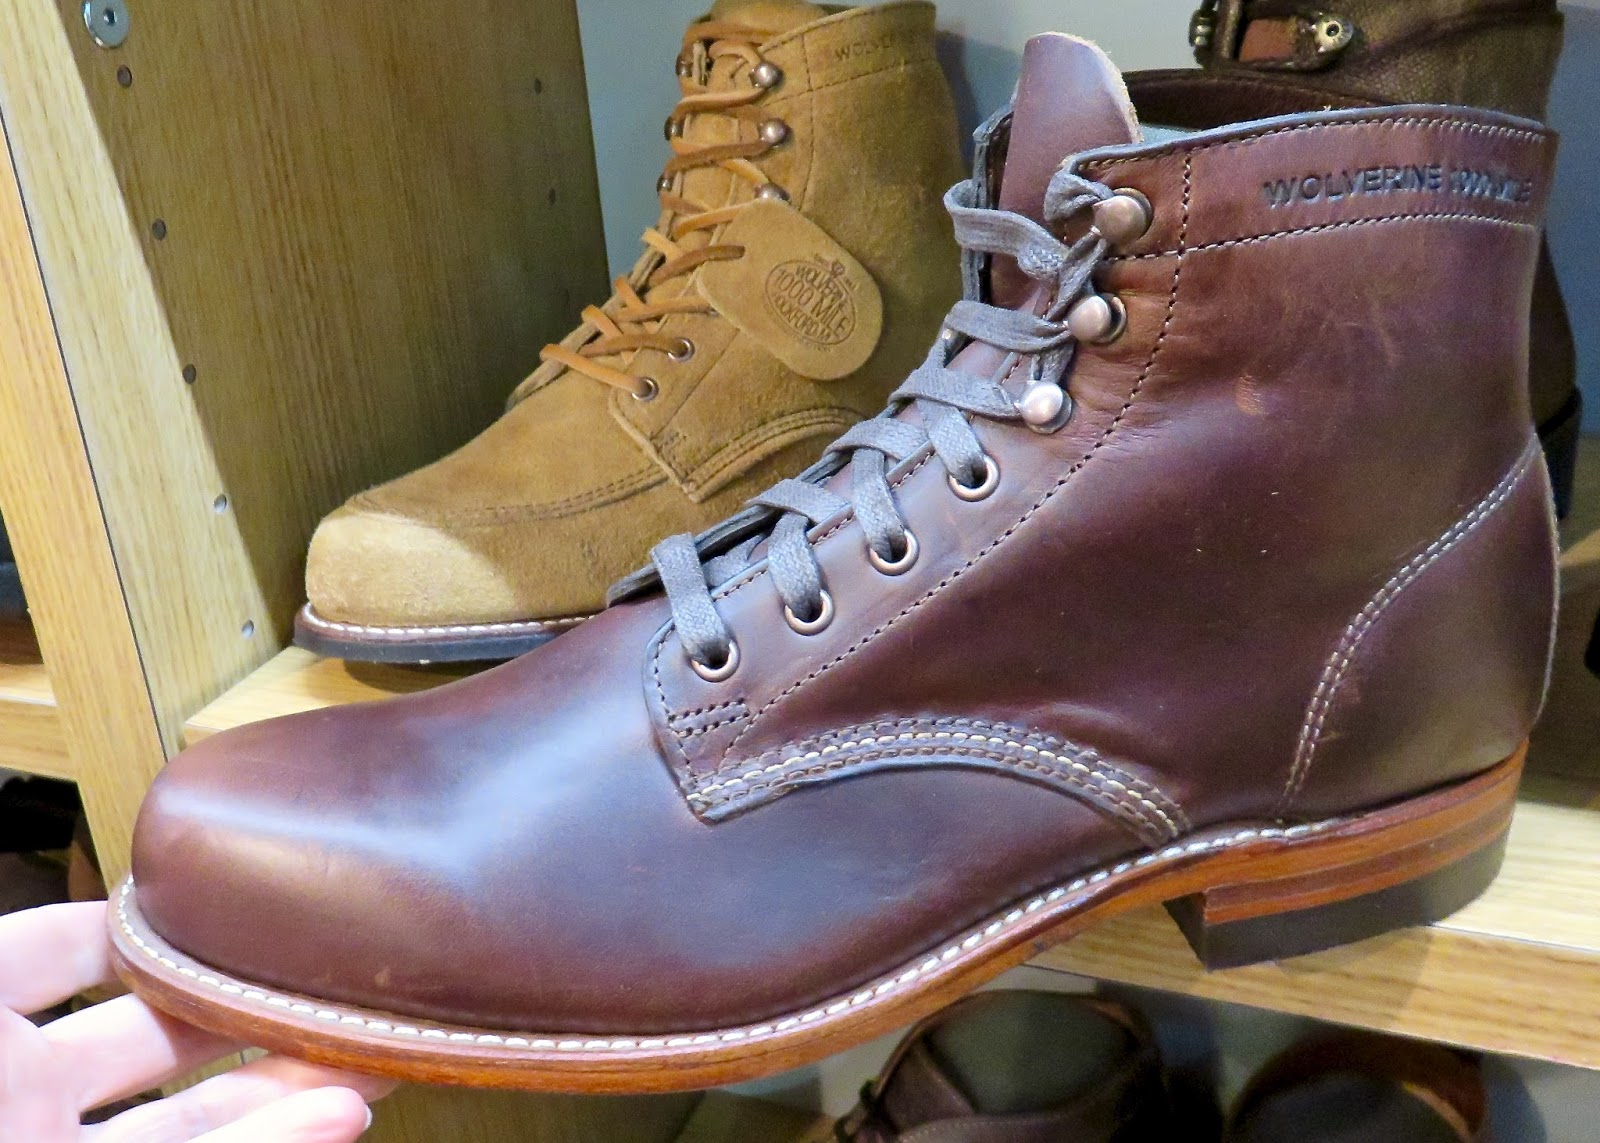 solid hardwear, handsome stitch details, Horween® Chromexcel® leather upper-hallmarks  of well made footwear-PLUS Made in the USA-Goodyear® Welt Construction ...